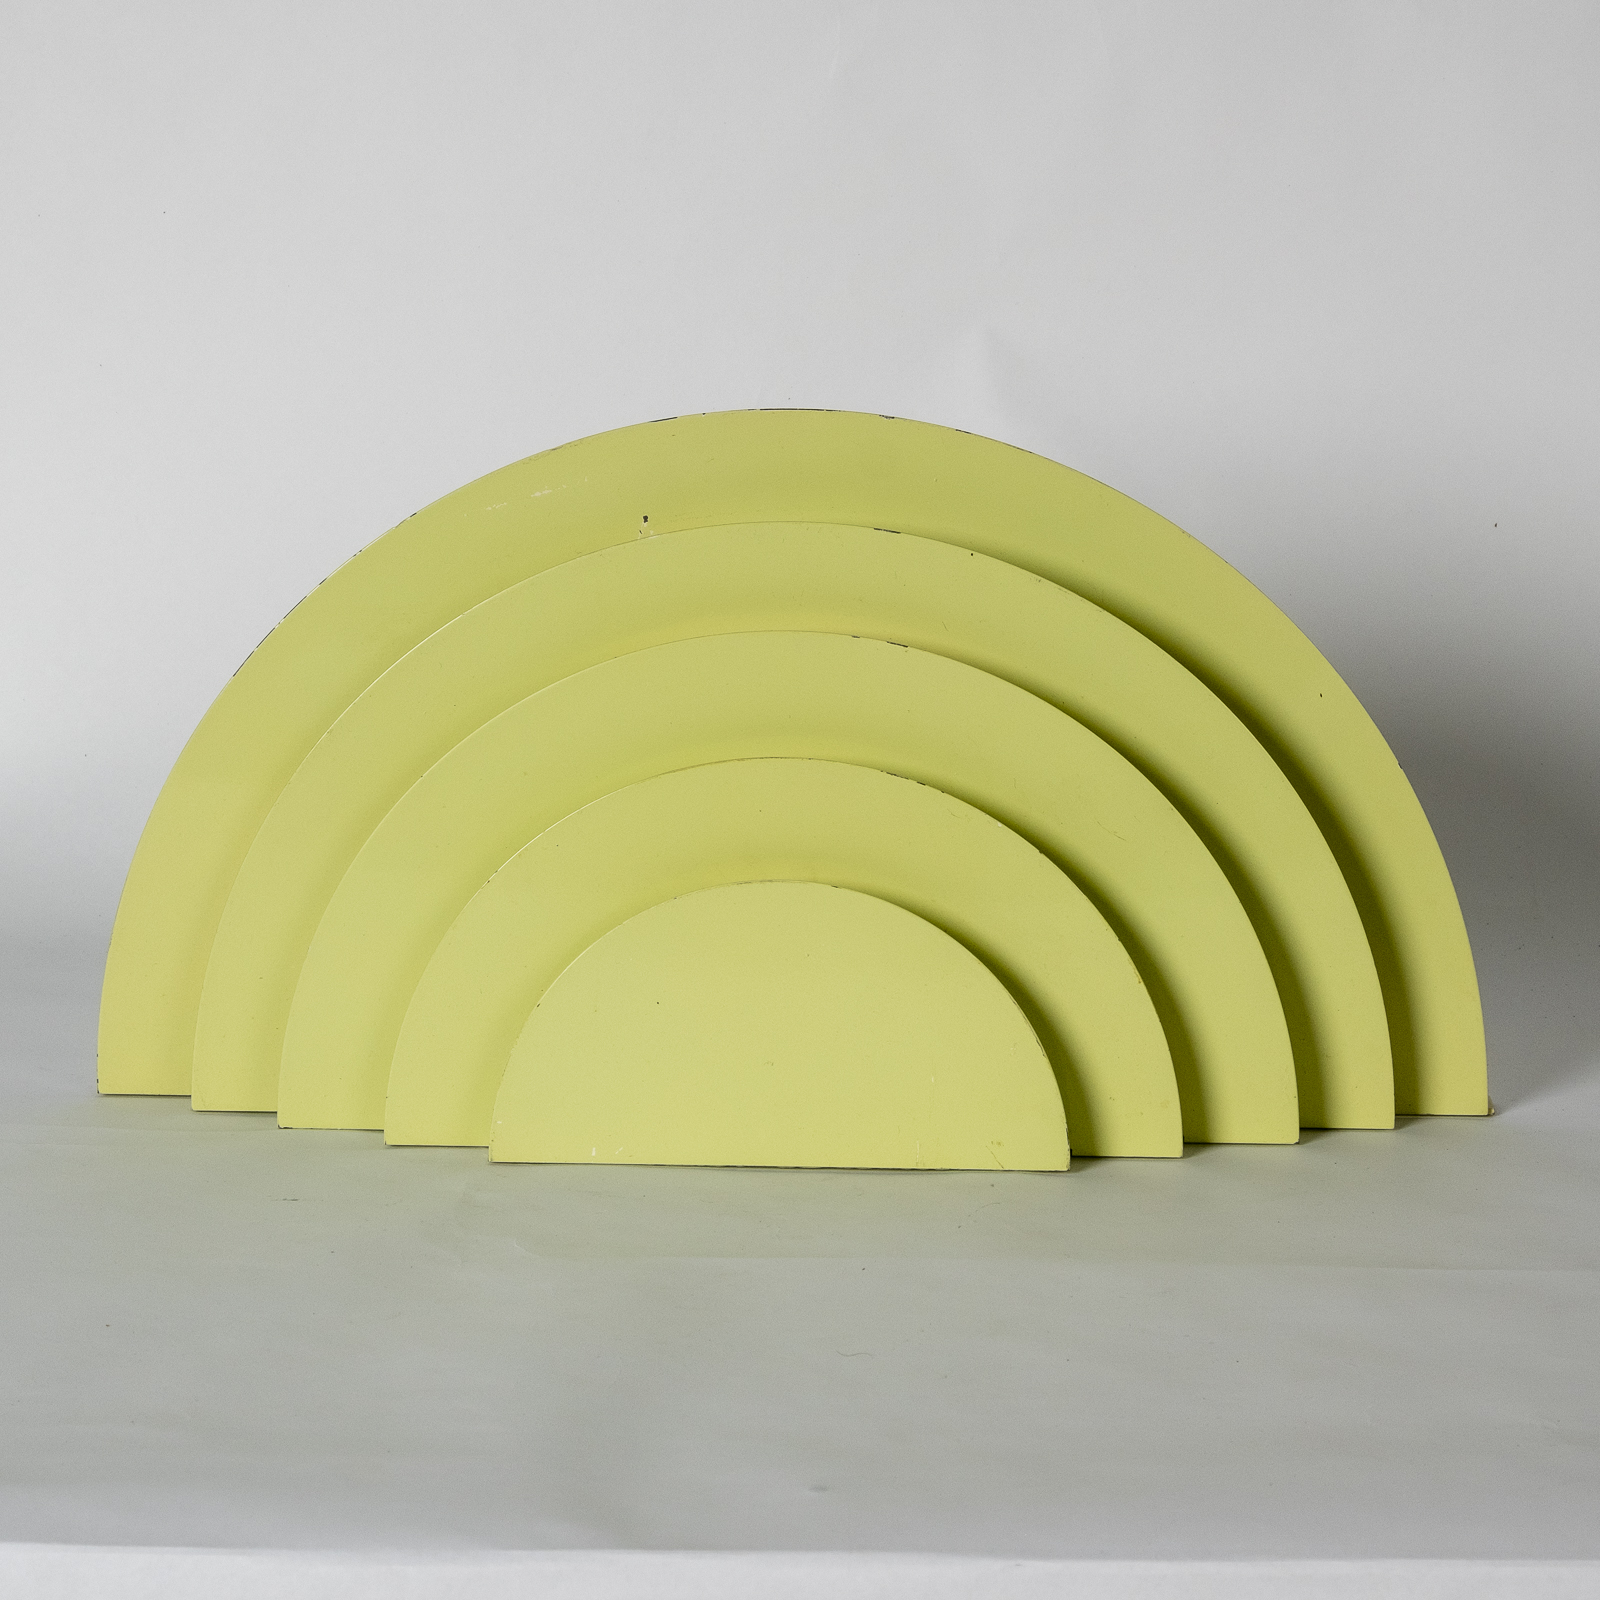 Meander Sconce By Cesare Casati And Emanuele Ponzi For Raak In Yellow, 1970s, The Netherlands3